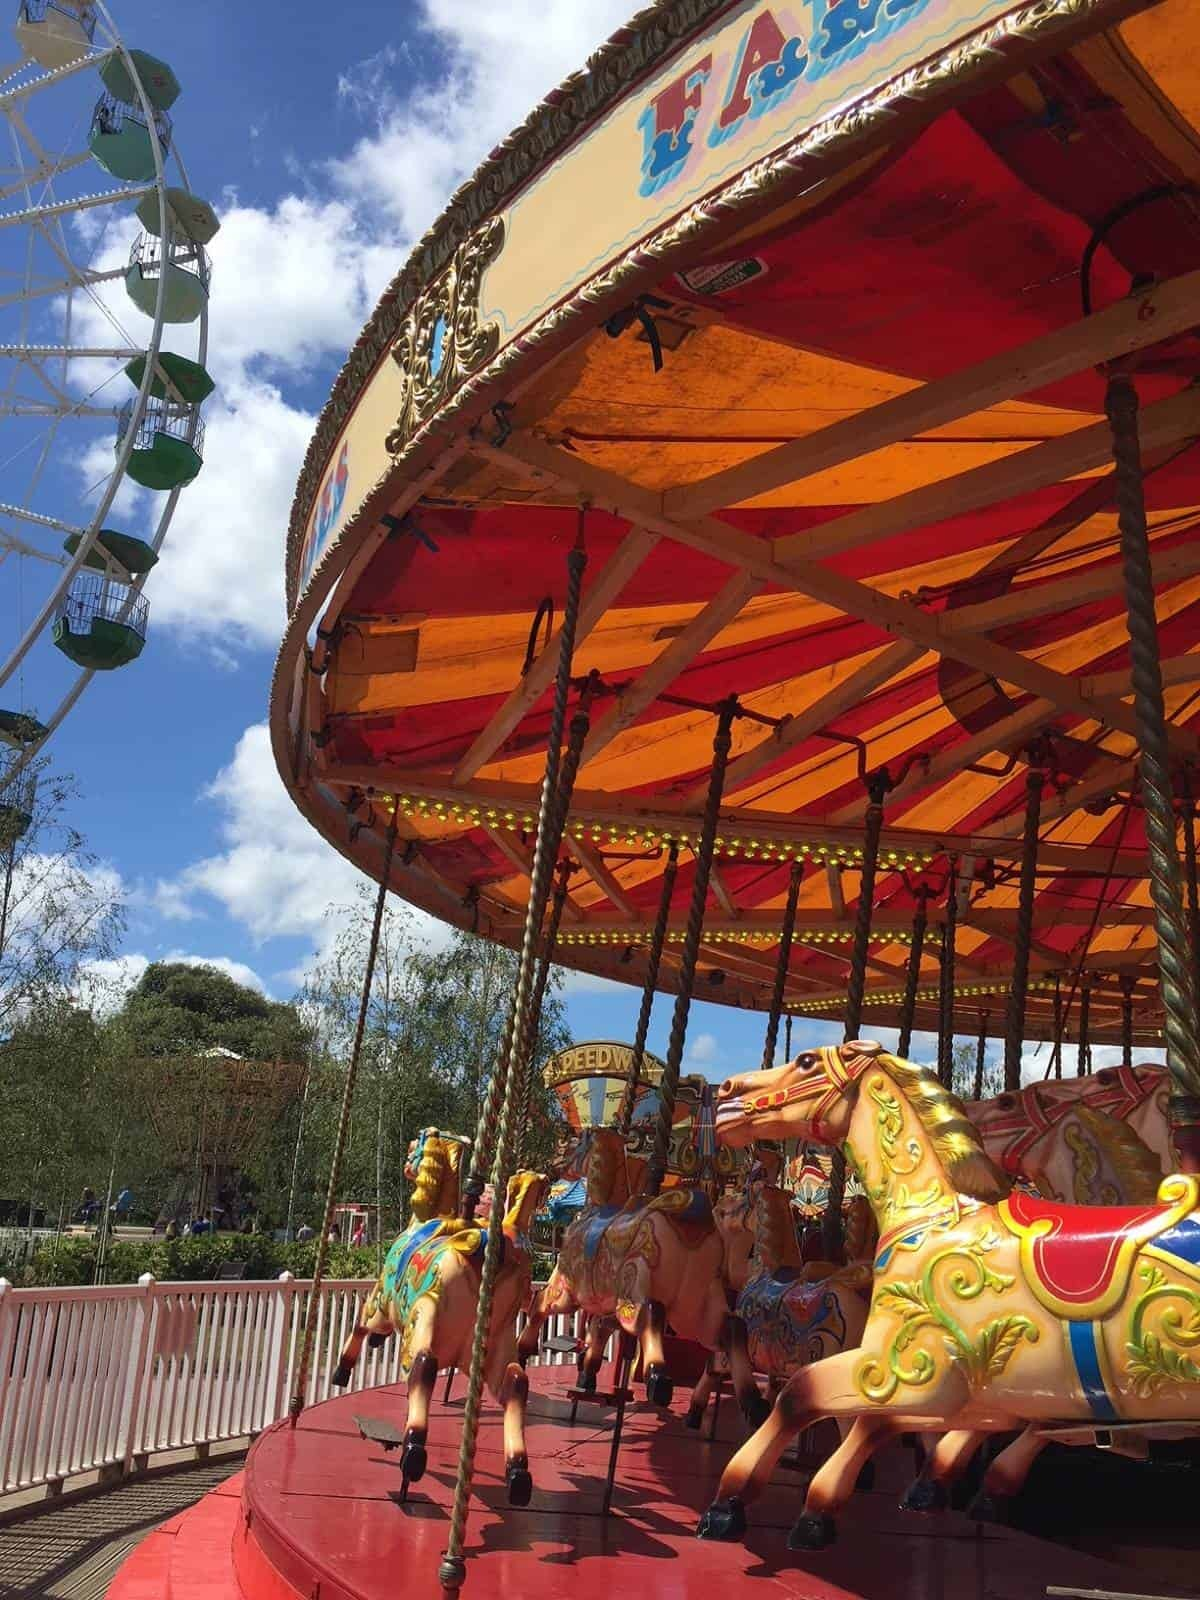 The Gallopers at Dreamland in Margate